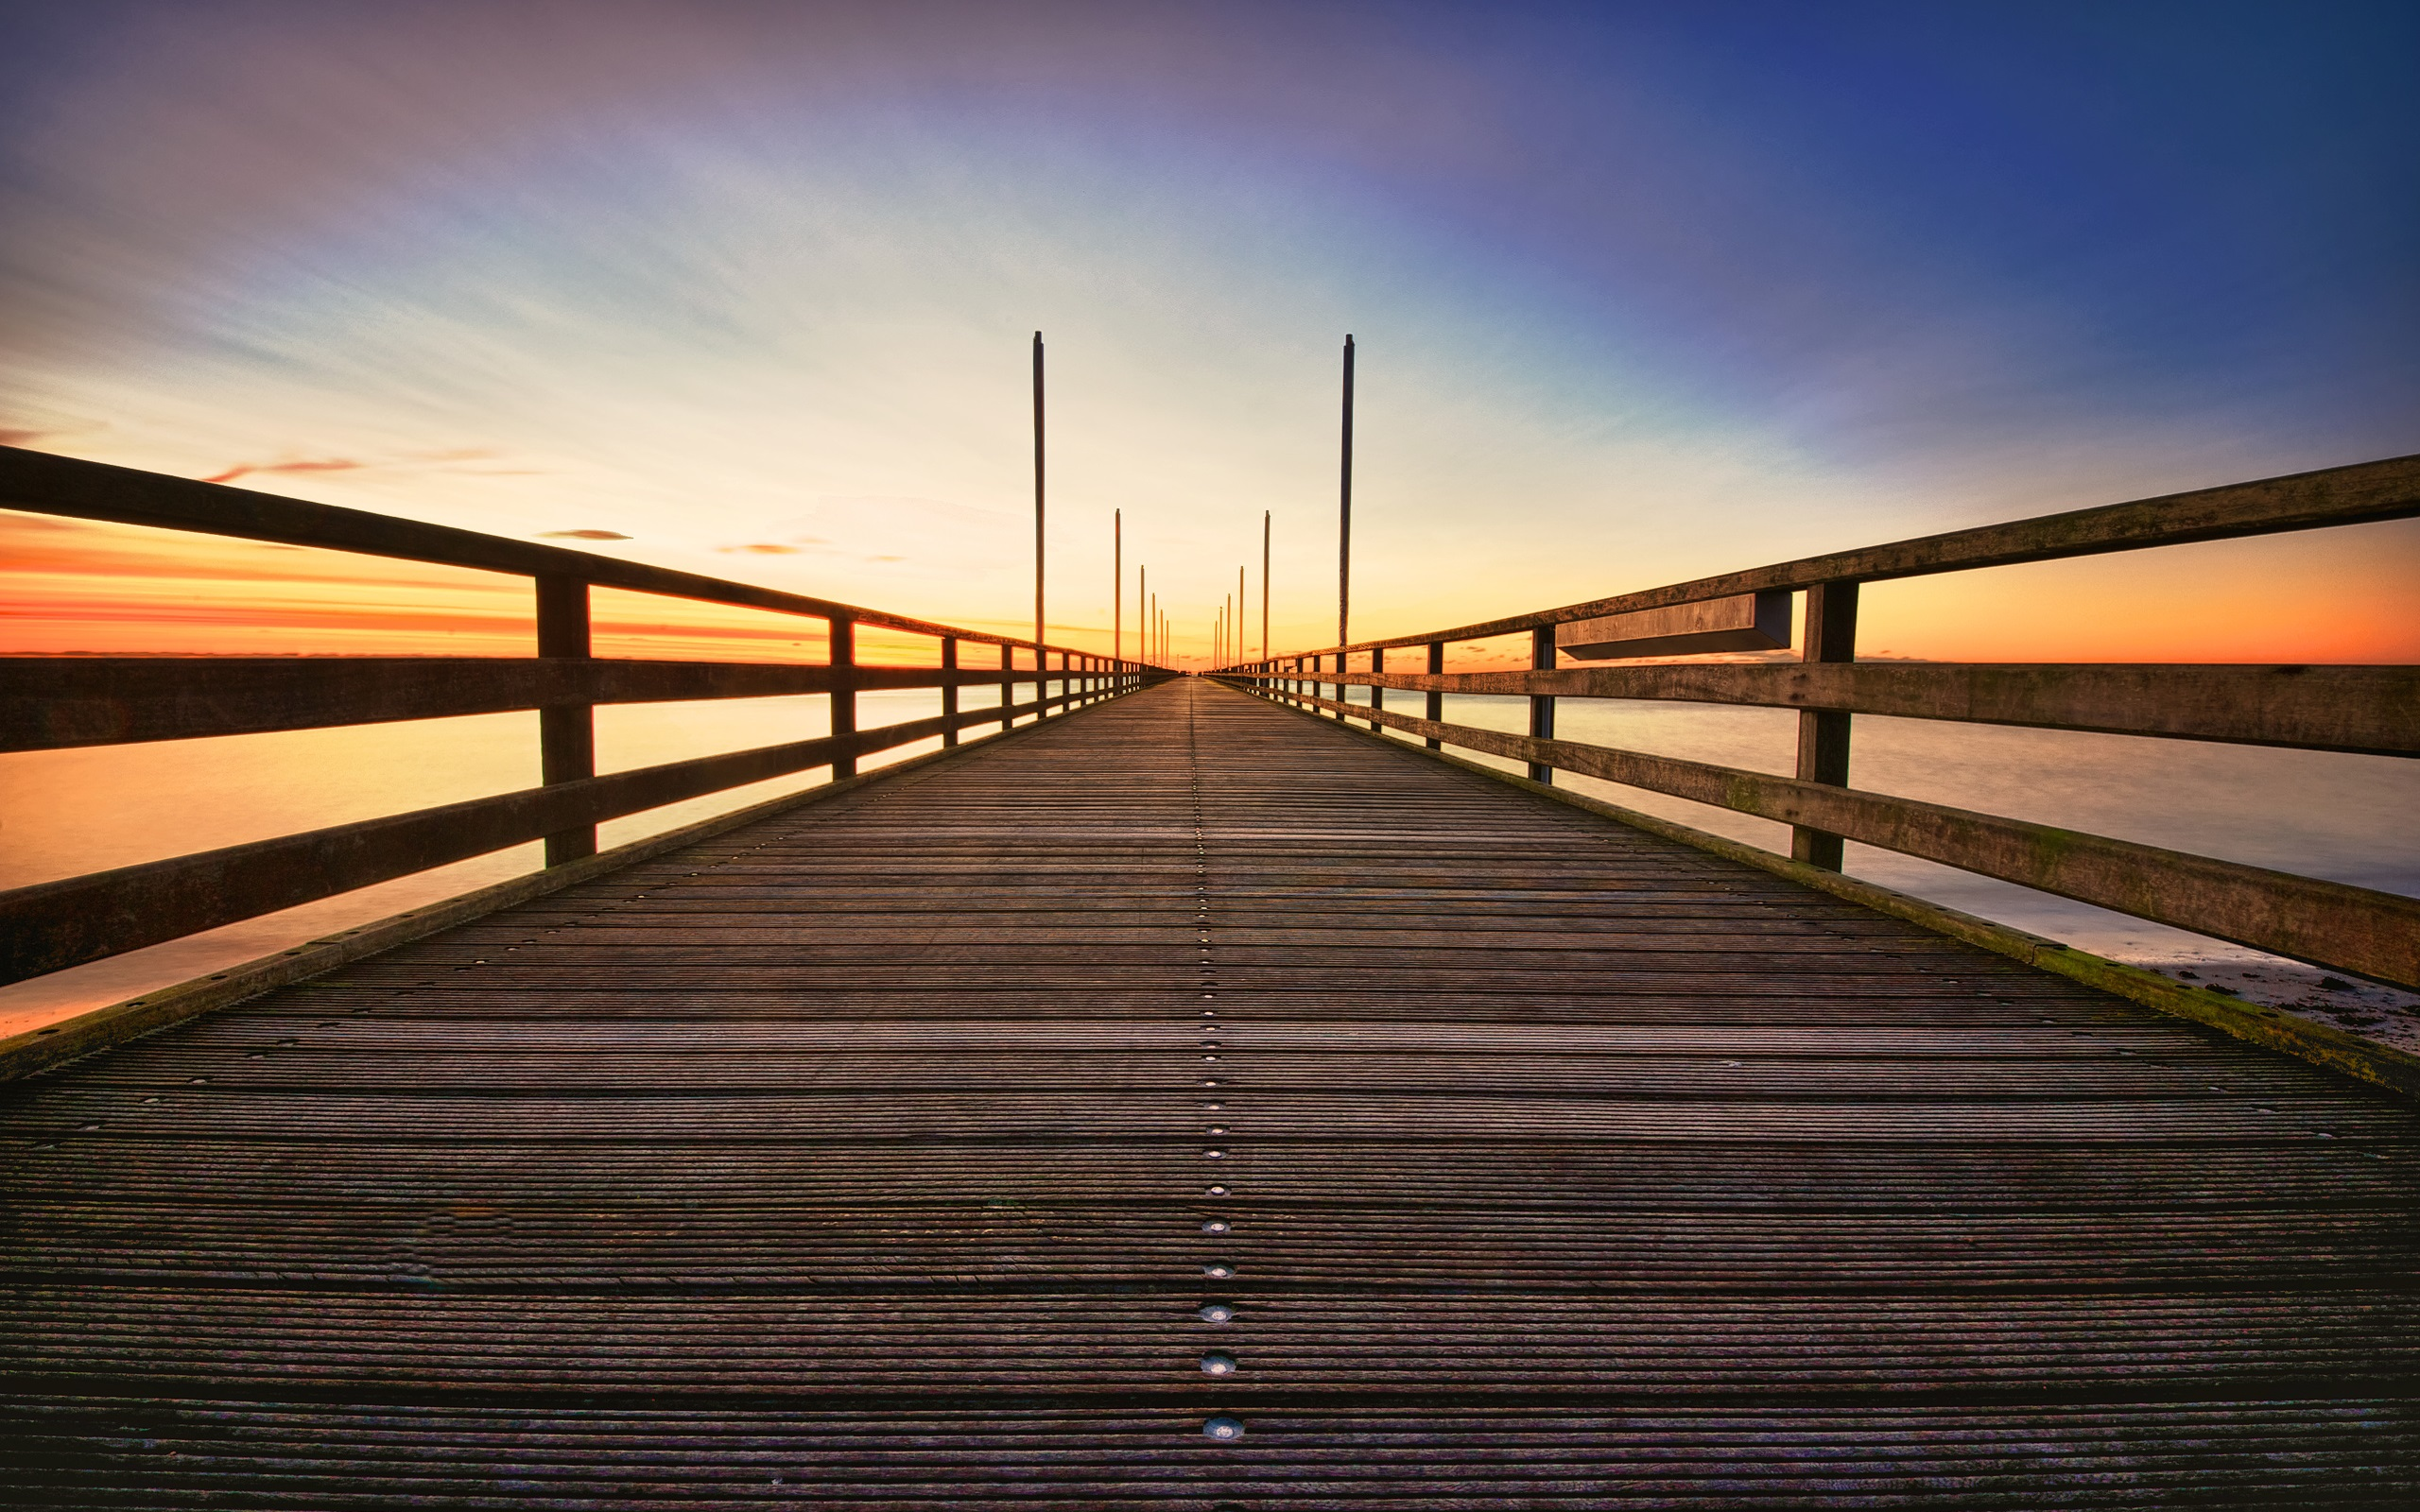 wooden bridge wallpaper - photo #11